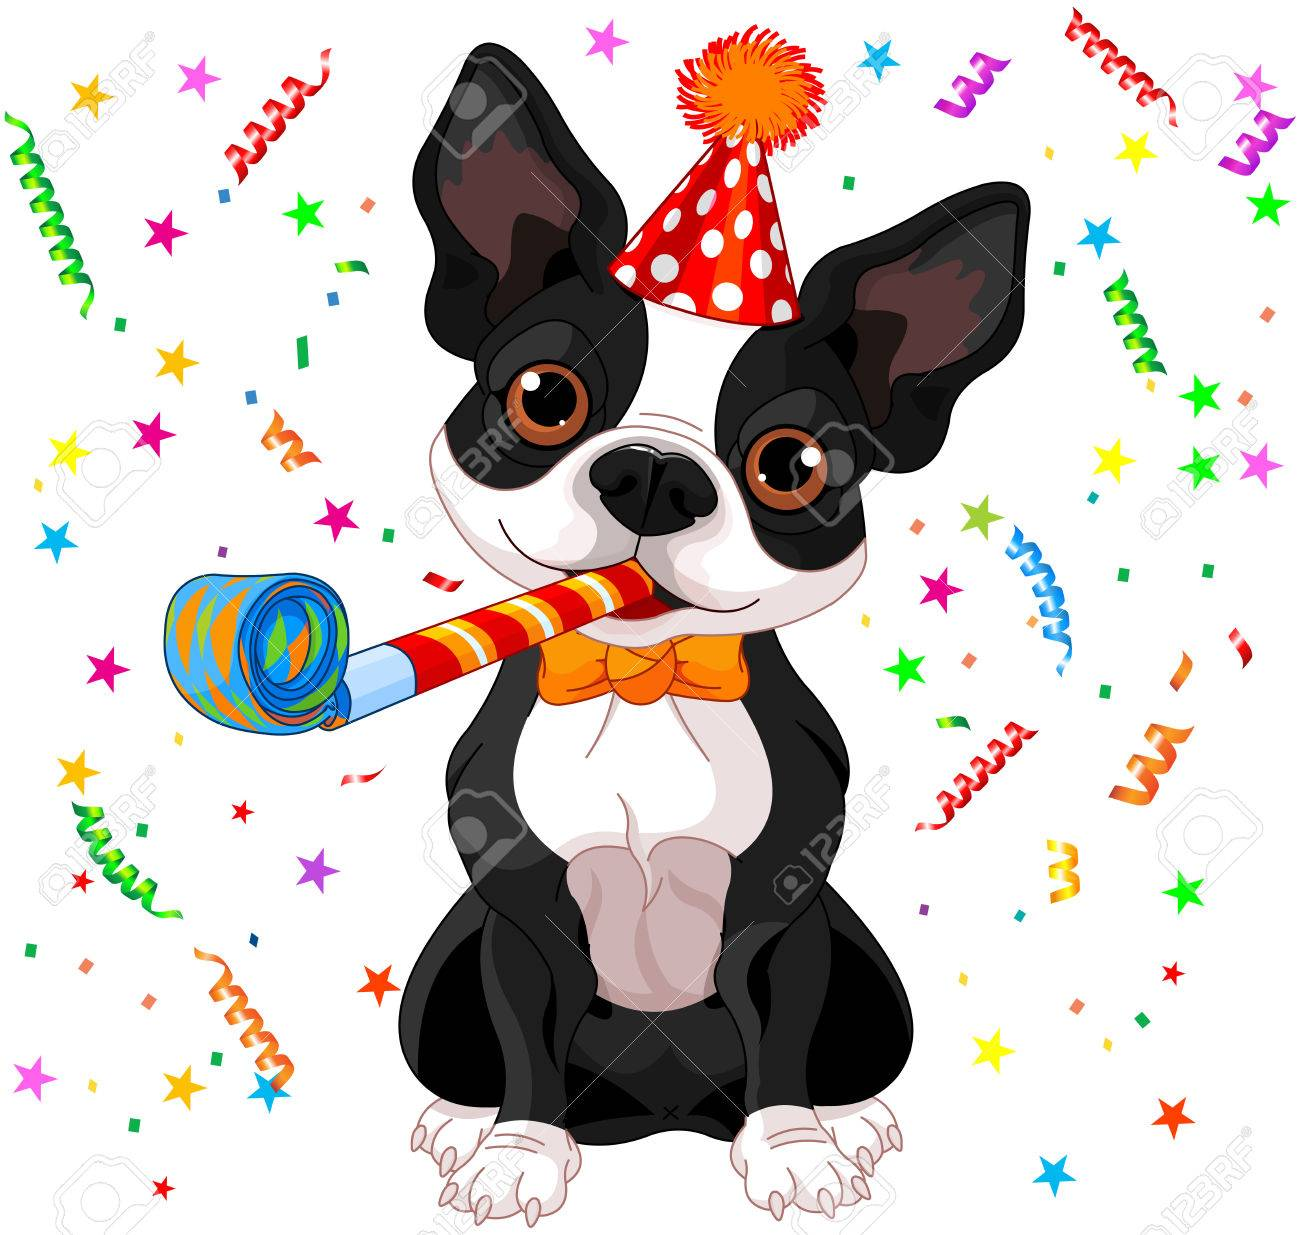 Nos bons plans vacances (Hotel ou autres) avec nos chiens ! - Page 2 35588778-illustration-of-cute-boston-terrier-celebrating